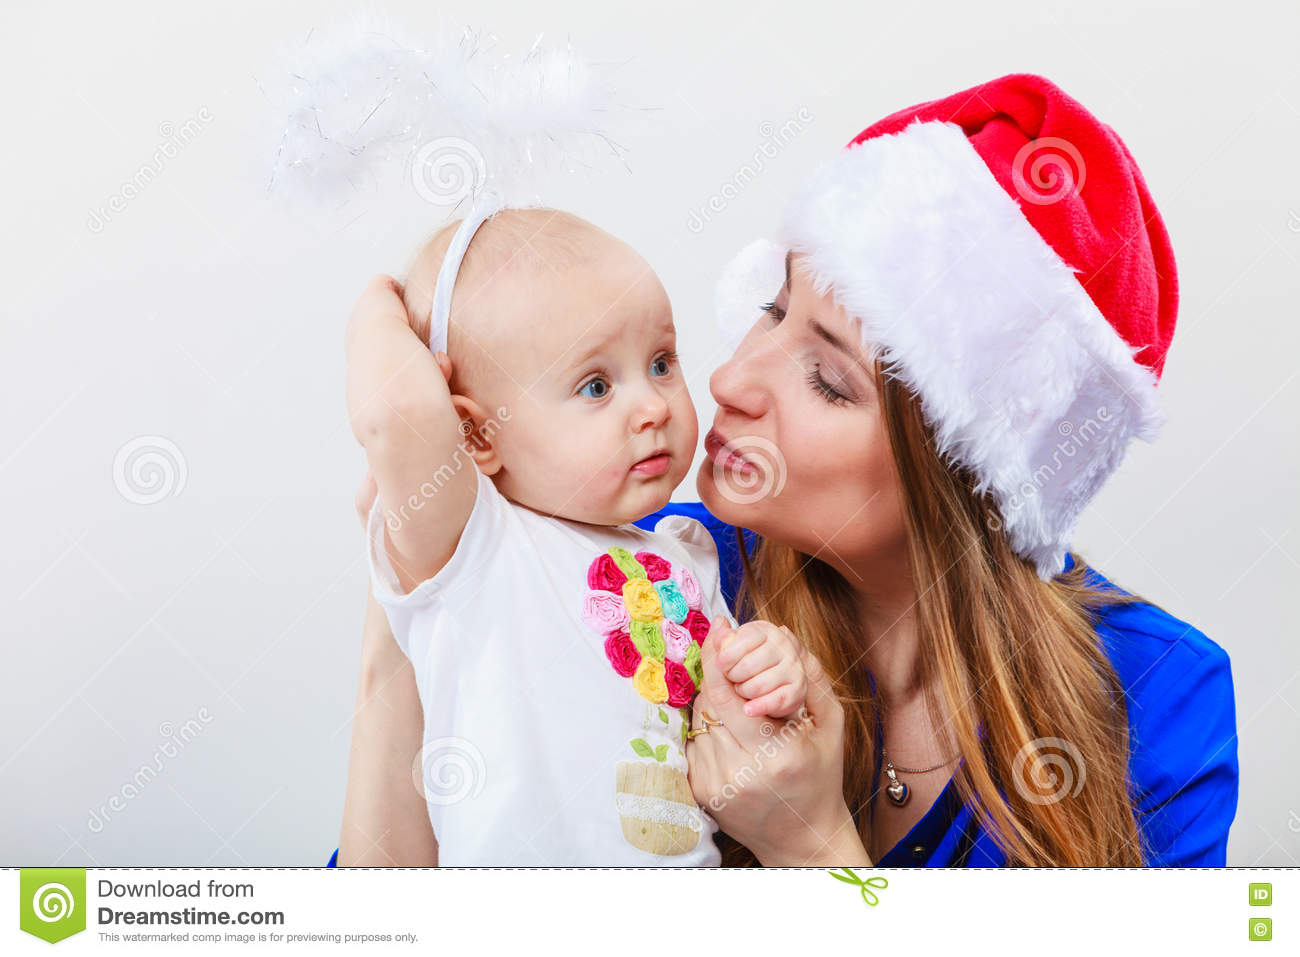 38db5267bfe50 Christmas Woman With Cute Baby. Stock Image - Image of cute